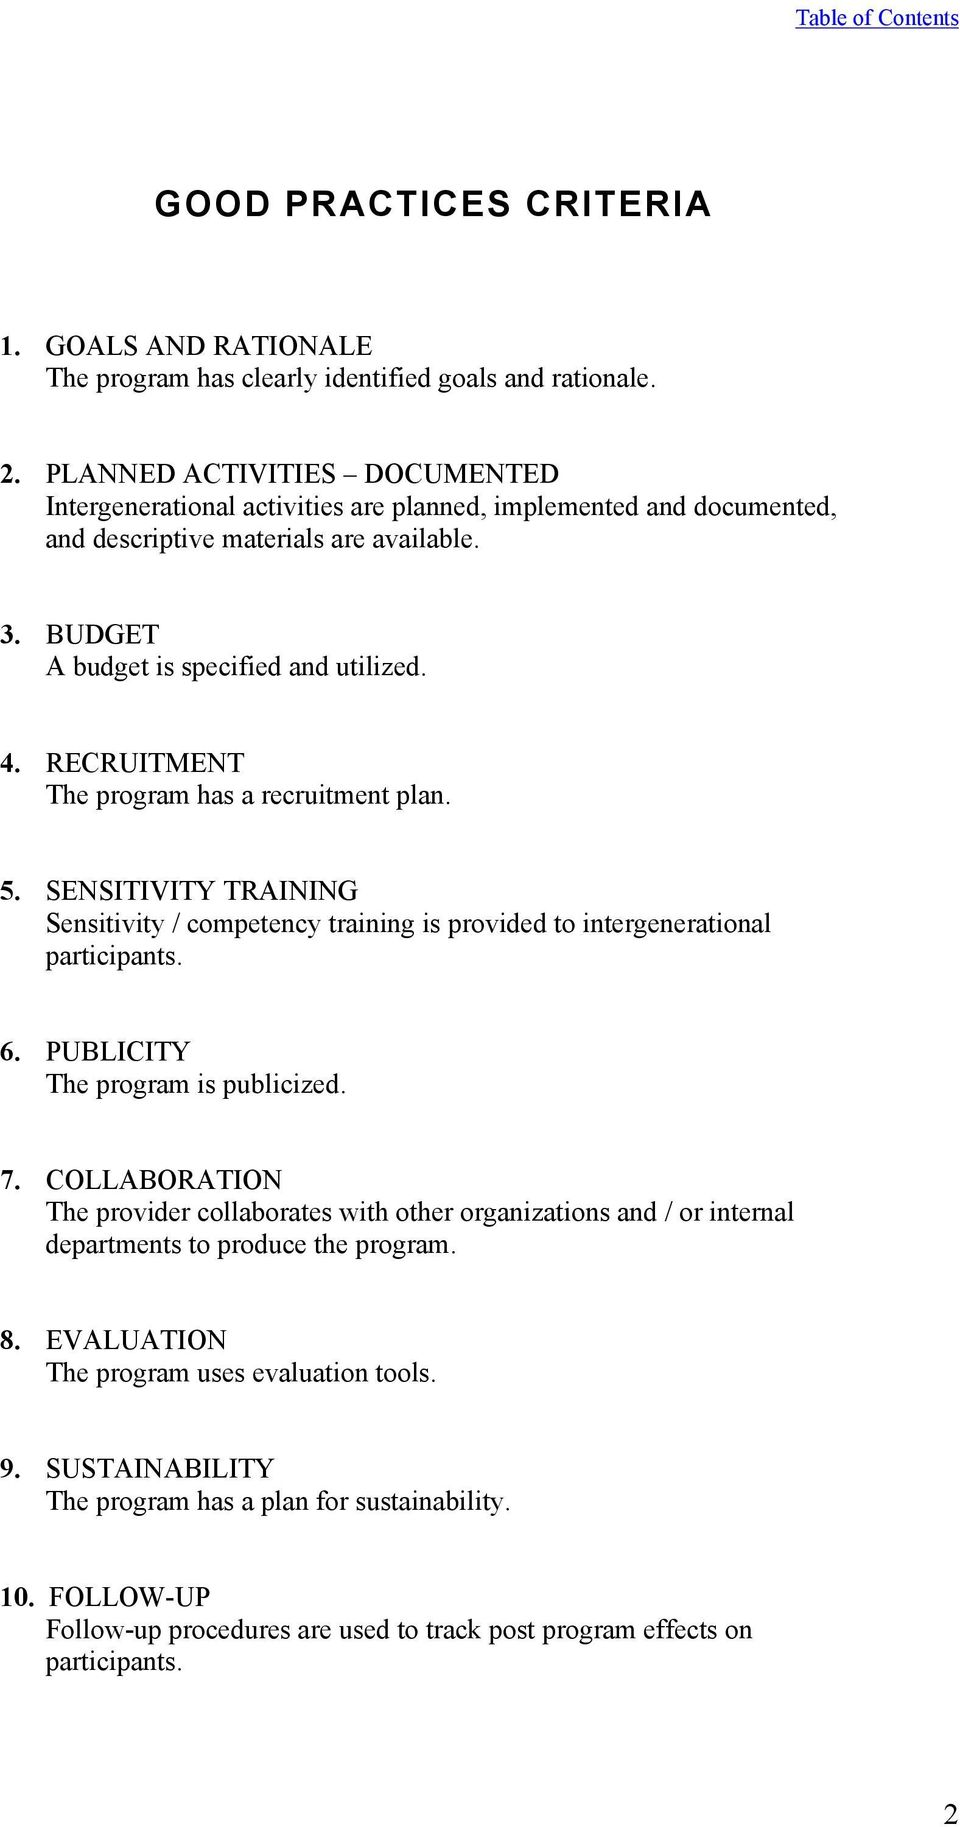 RECRUITMENT The program has a recruitment plan. 5. SENSITIVITY TRAINING Sensitivity / competency training is provided to intergenerational participants. 6. PUBLICITY The program is publicized. 7.